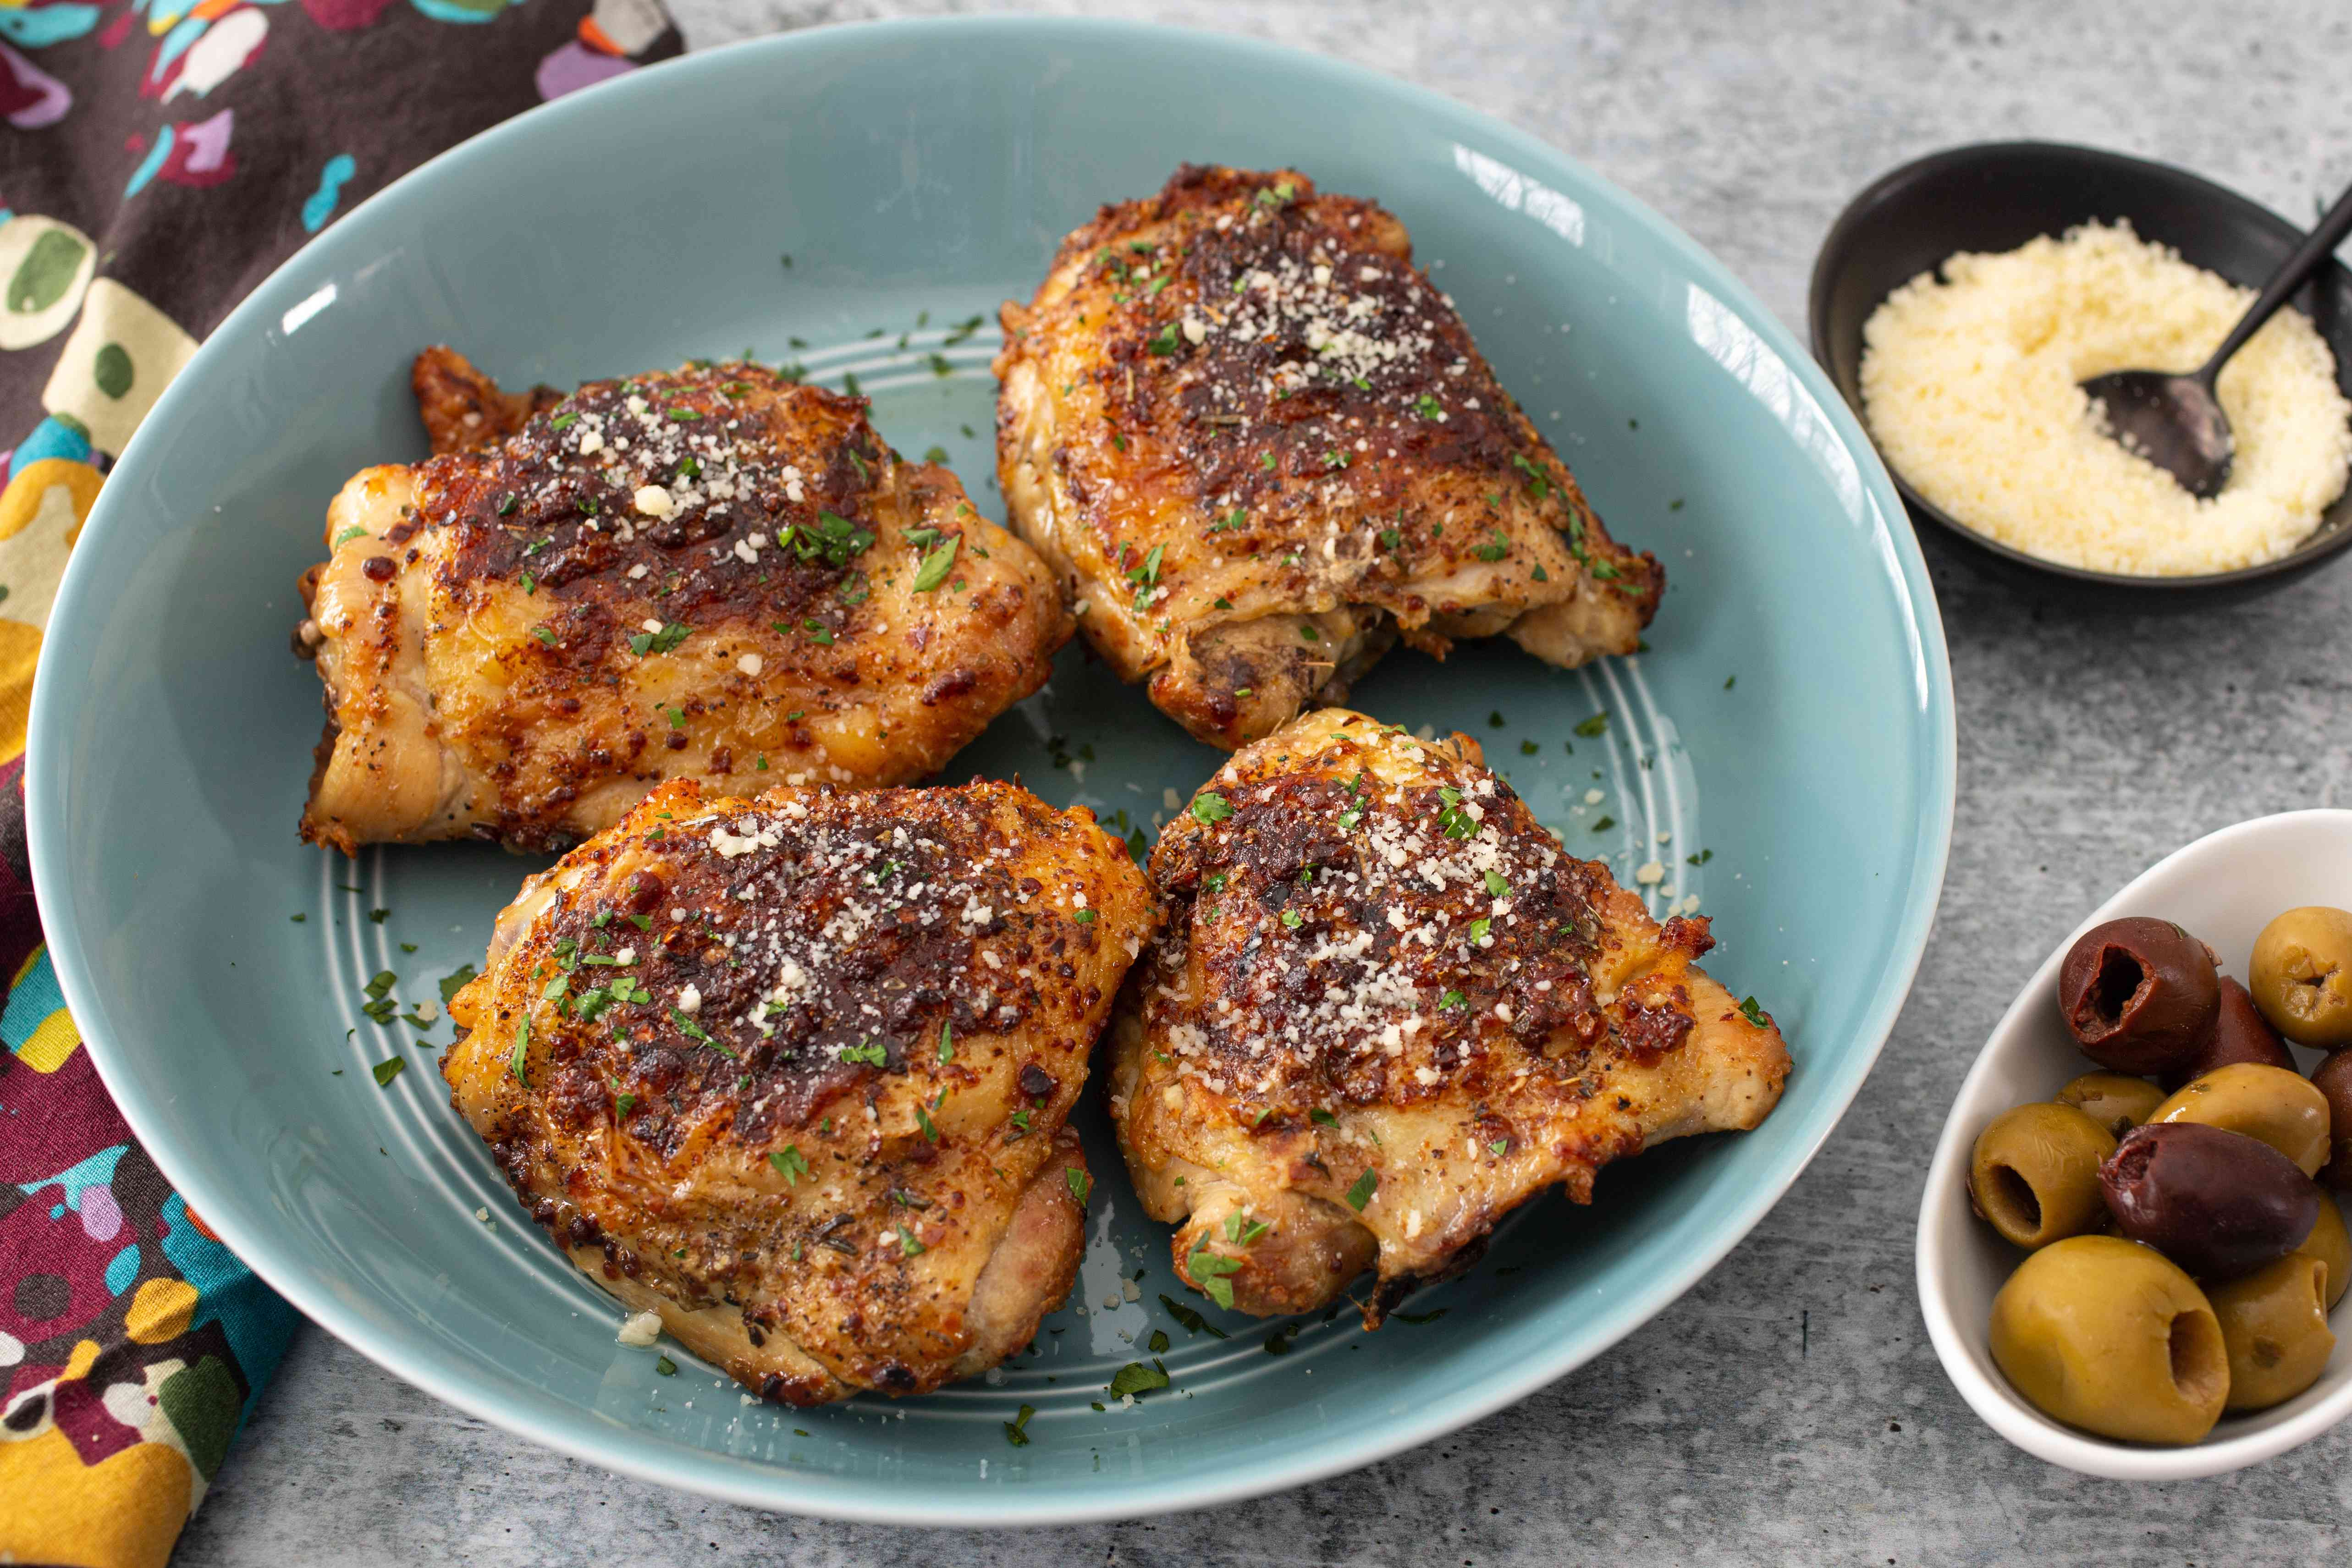 Air fryer chicken thighs with a sprinkling of Parmesan cheese